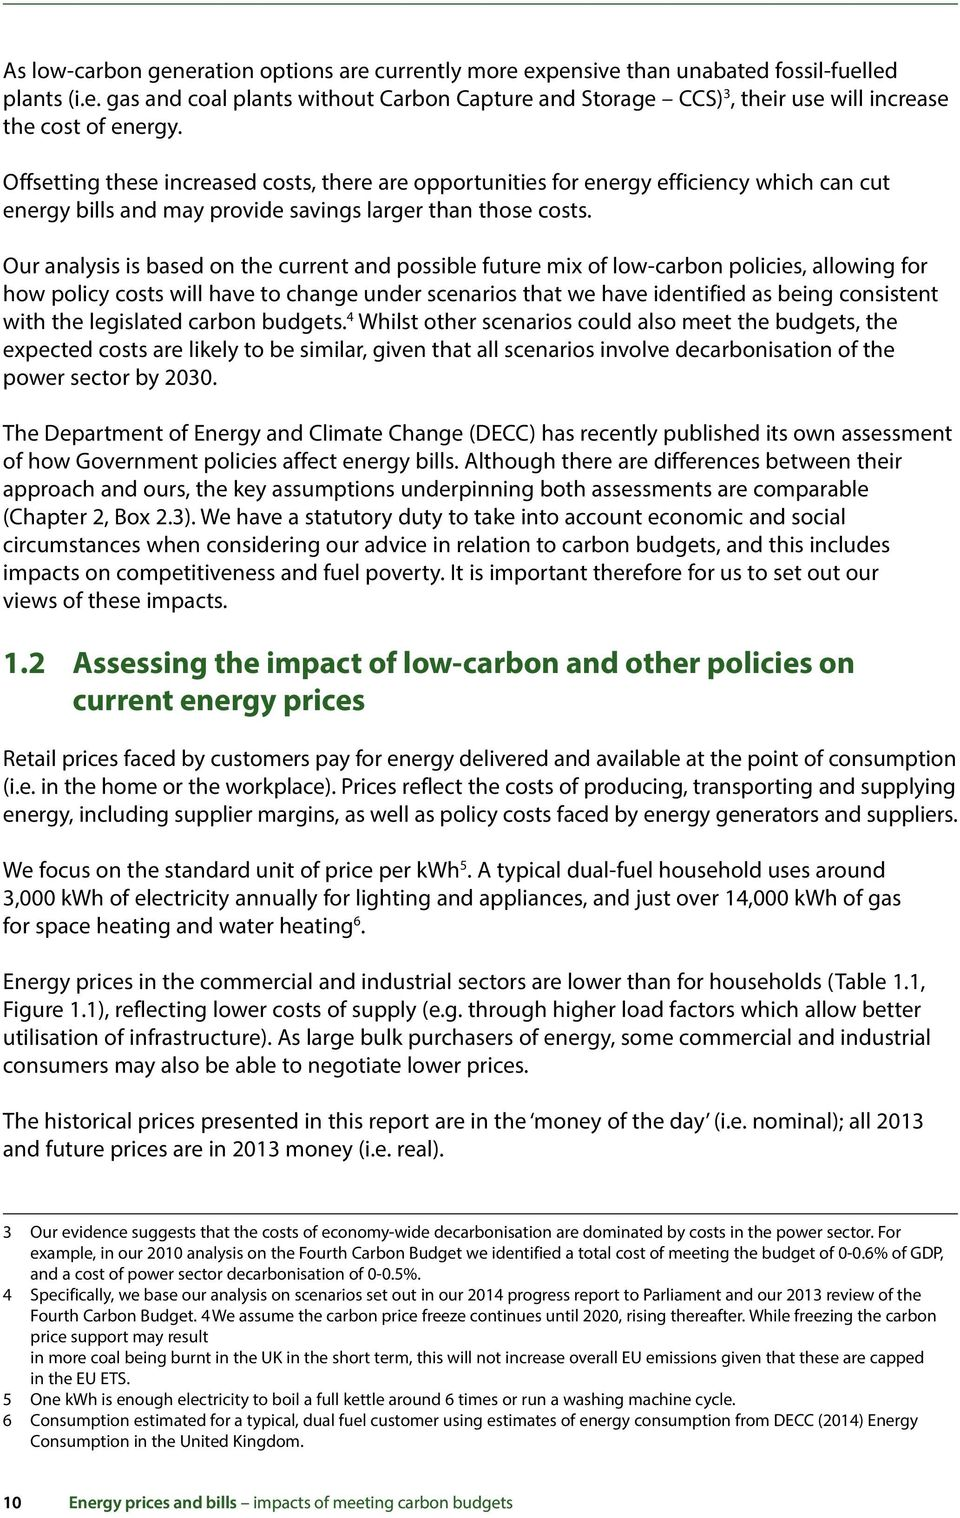 Our analysis is based on the current and possible future mix of low-carbon policies, allowing for how policy costs will have to change under scenarios that we have identified as being consistent with